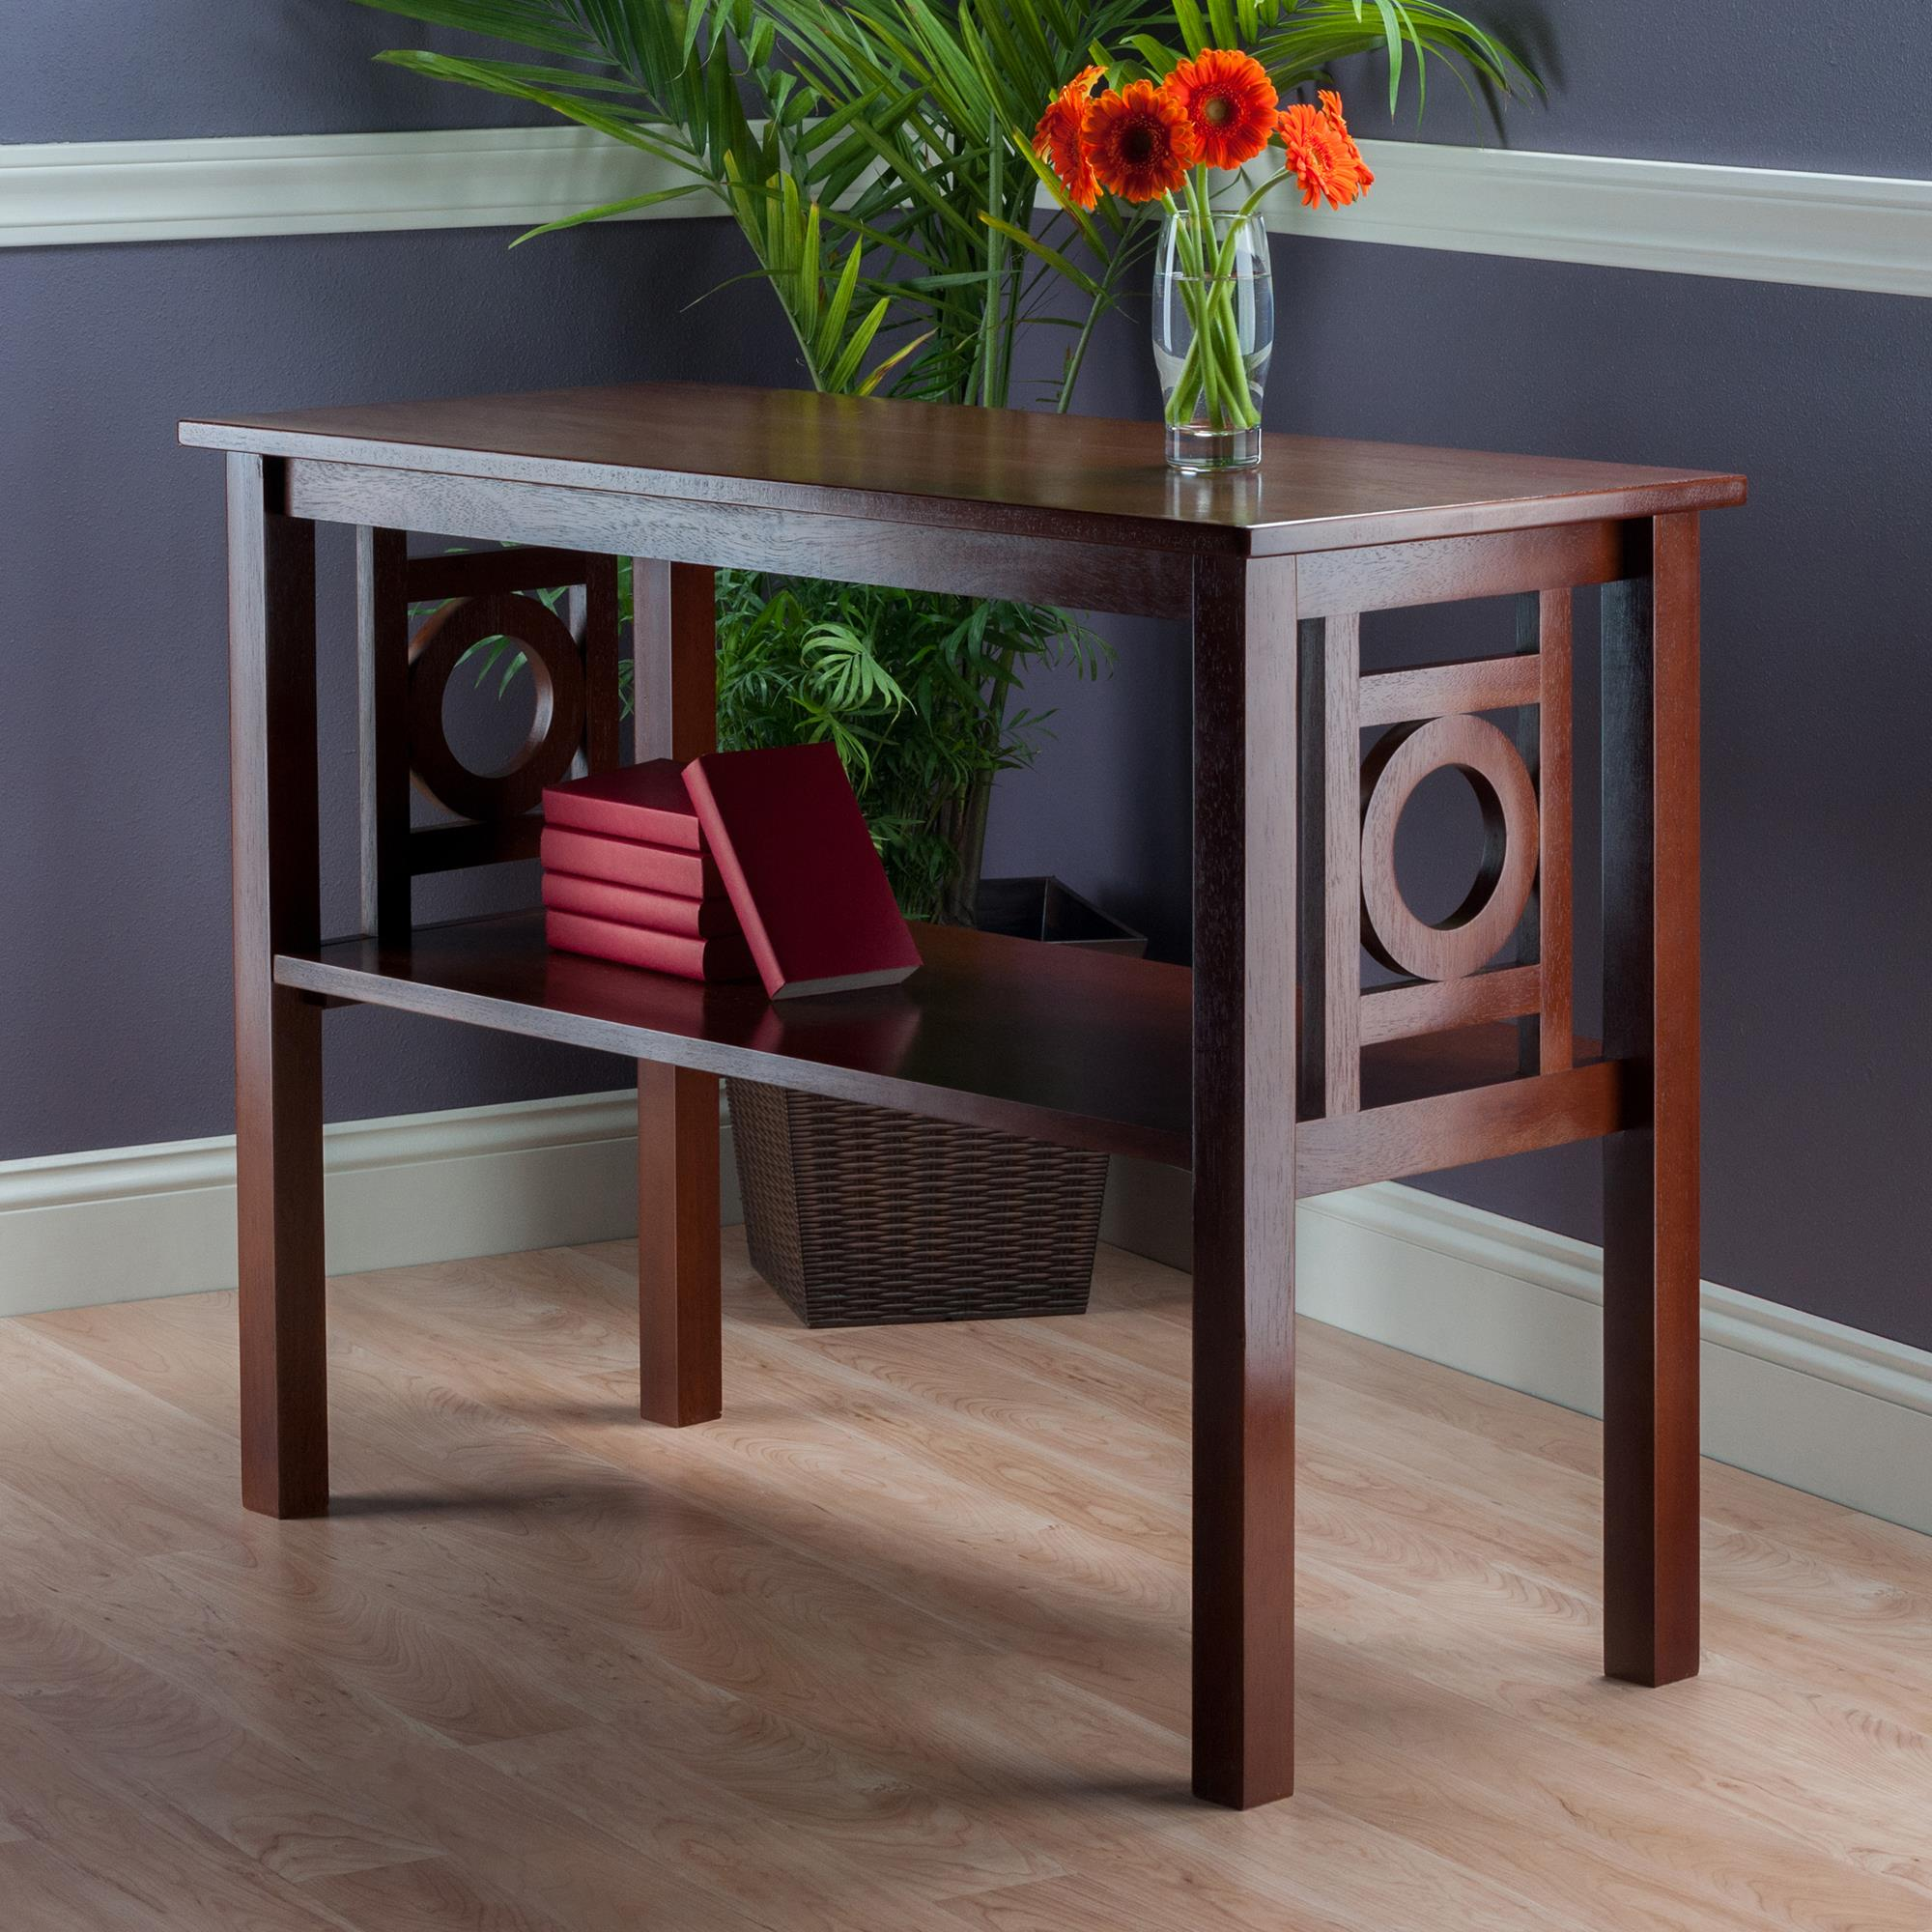 winsome wood ollie console table walnut ojcommerce roomsetting tab accent battery operated indoor lamps basement furniture waterproof cover for garden and chairs upholstered chair